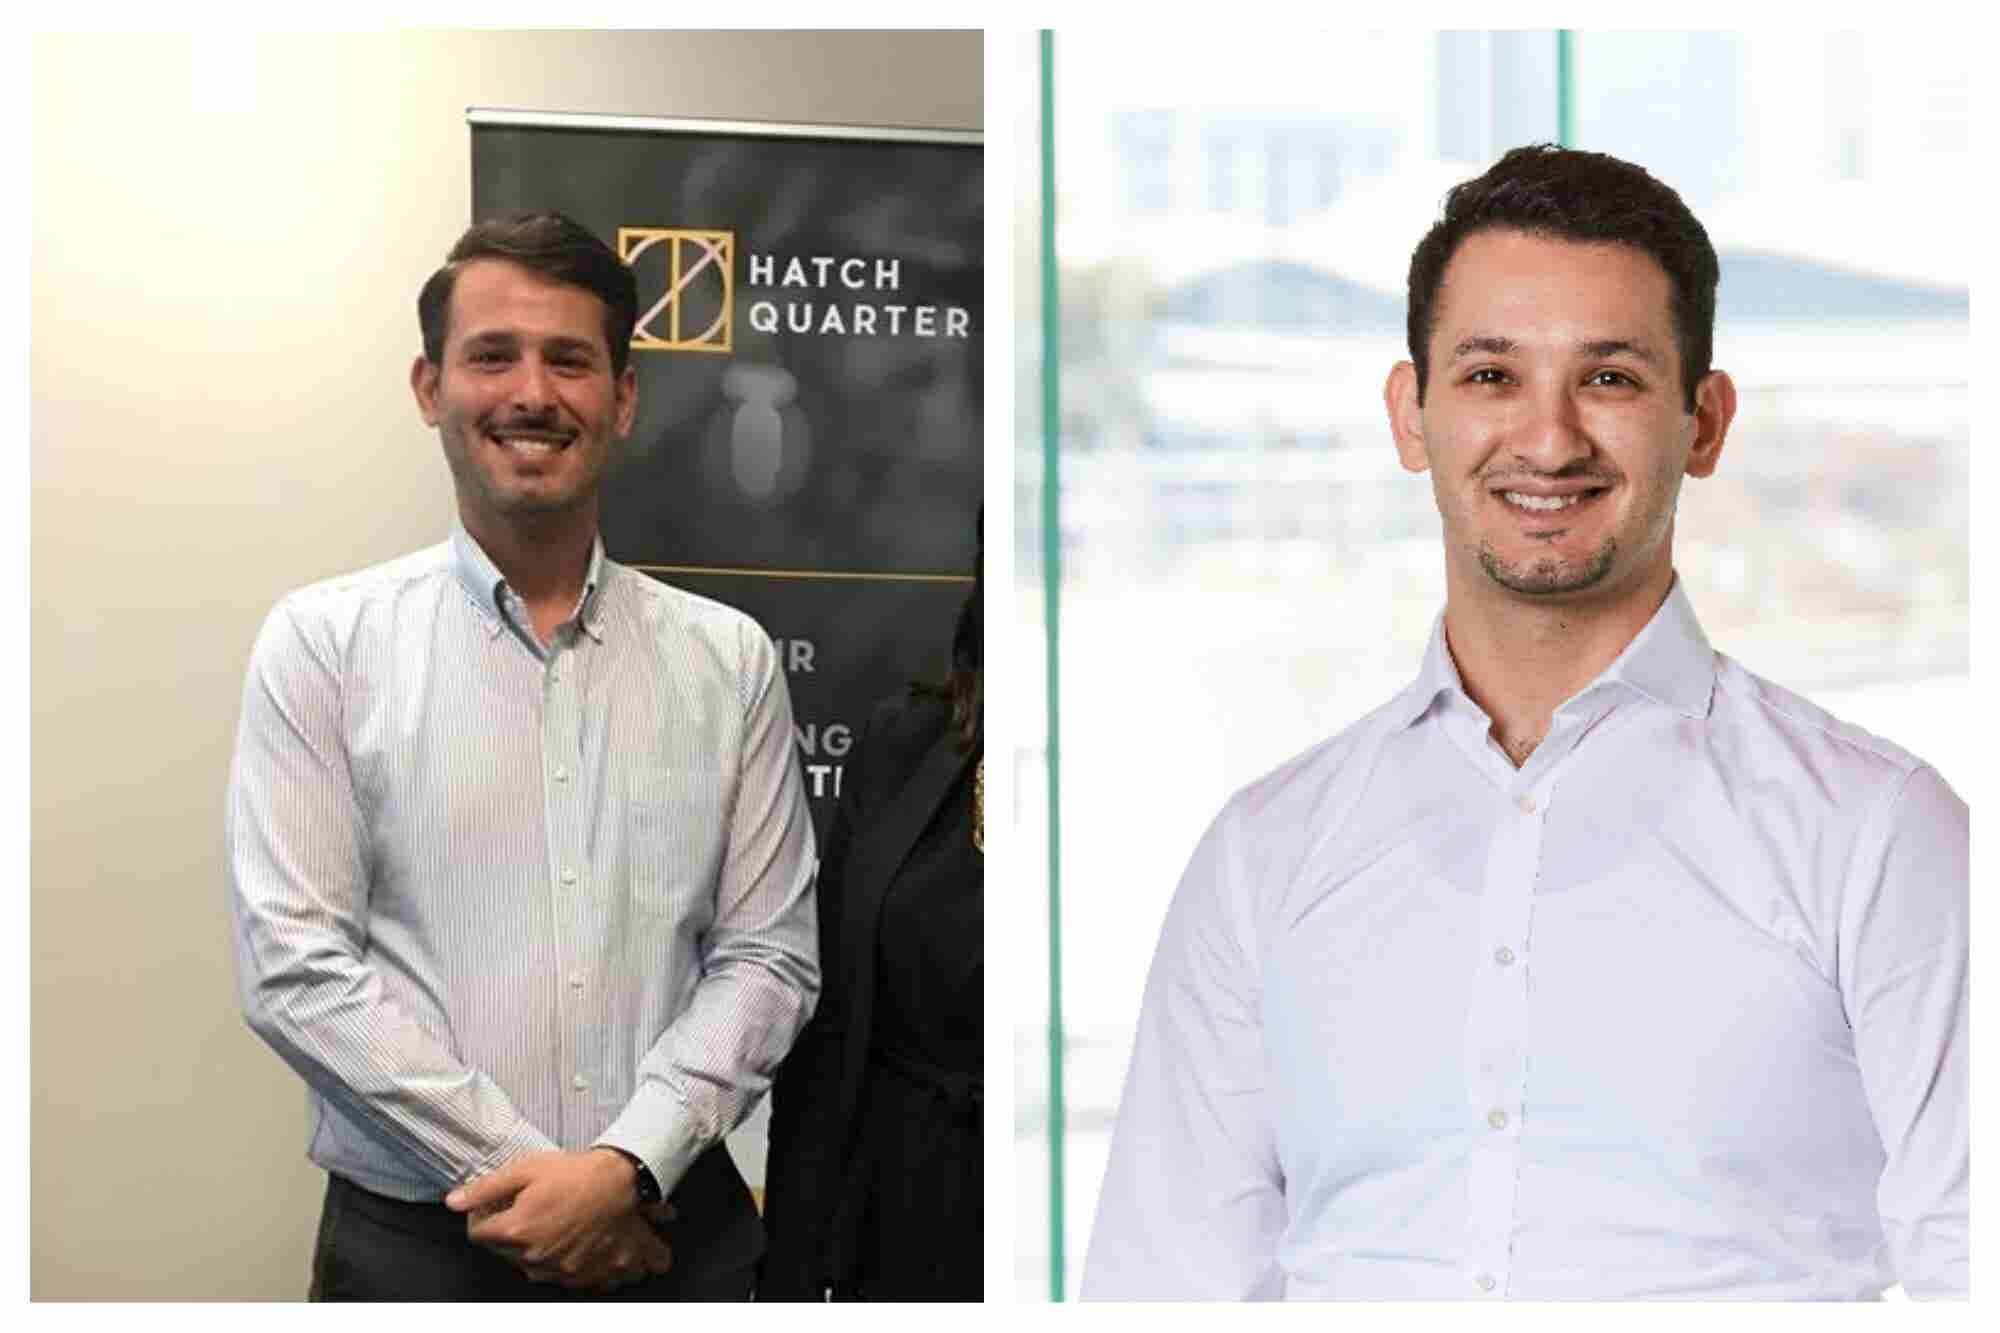 These Two Australian Brothers Have Set up a Co-working Space for Migrant Entrepreneurs